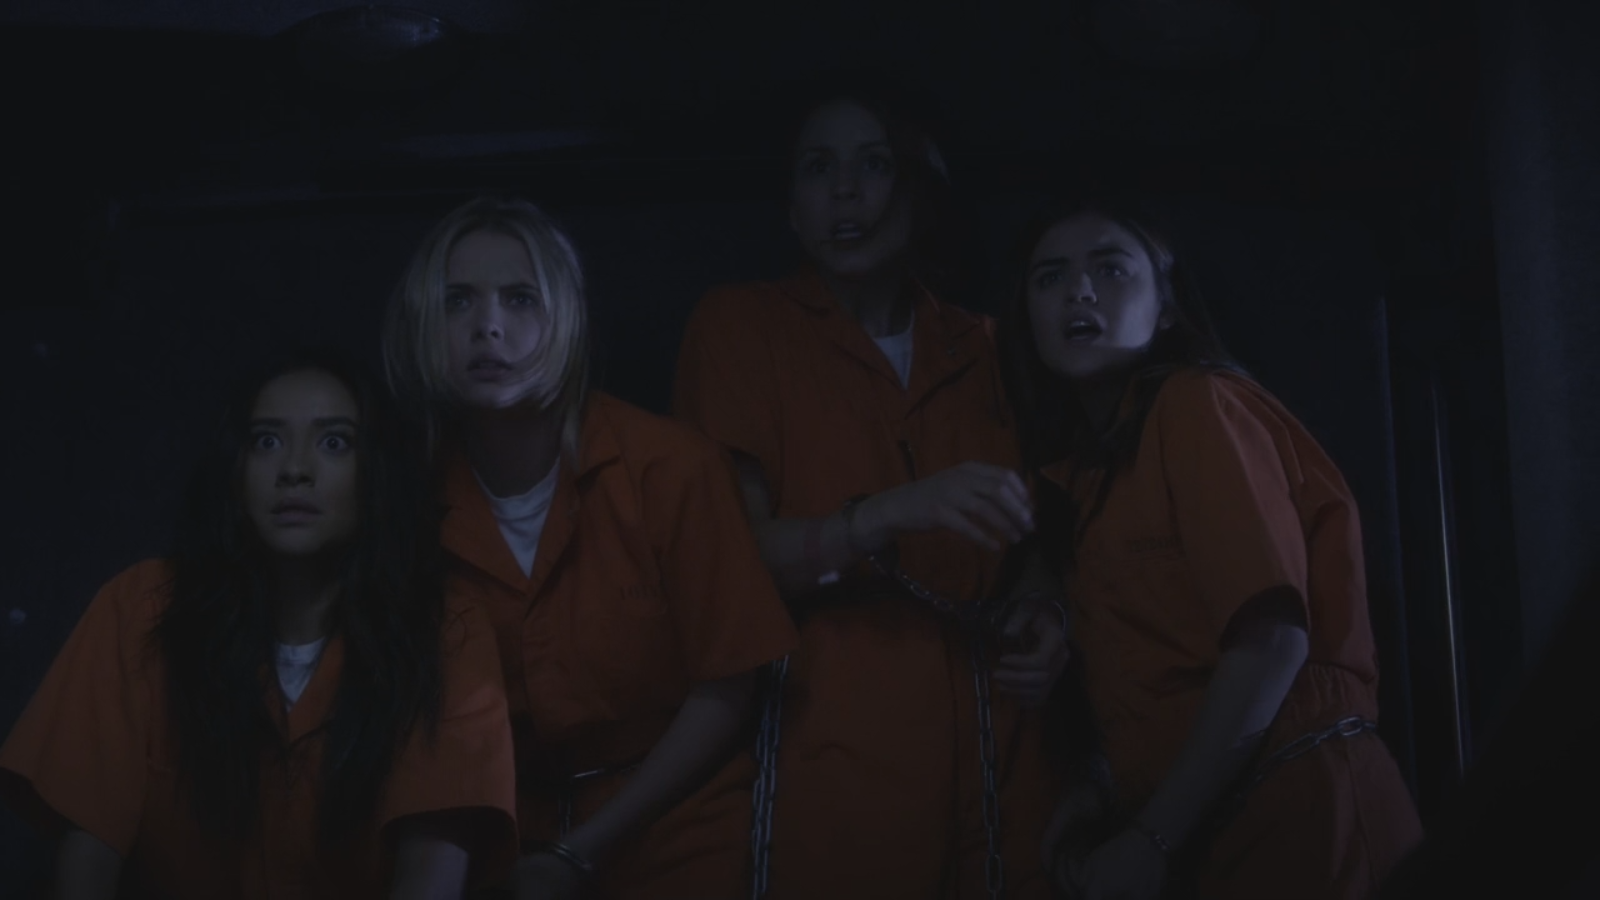 Pretty little liars quot recap 6 01 escape from the dollhouse page 7 - If That Wasn T A Finale Then I Don T Know What The Hell Is I Know A Lot Of People Are Reacting Negatively To The Big A Reveal But To Be